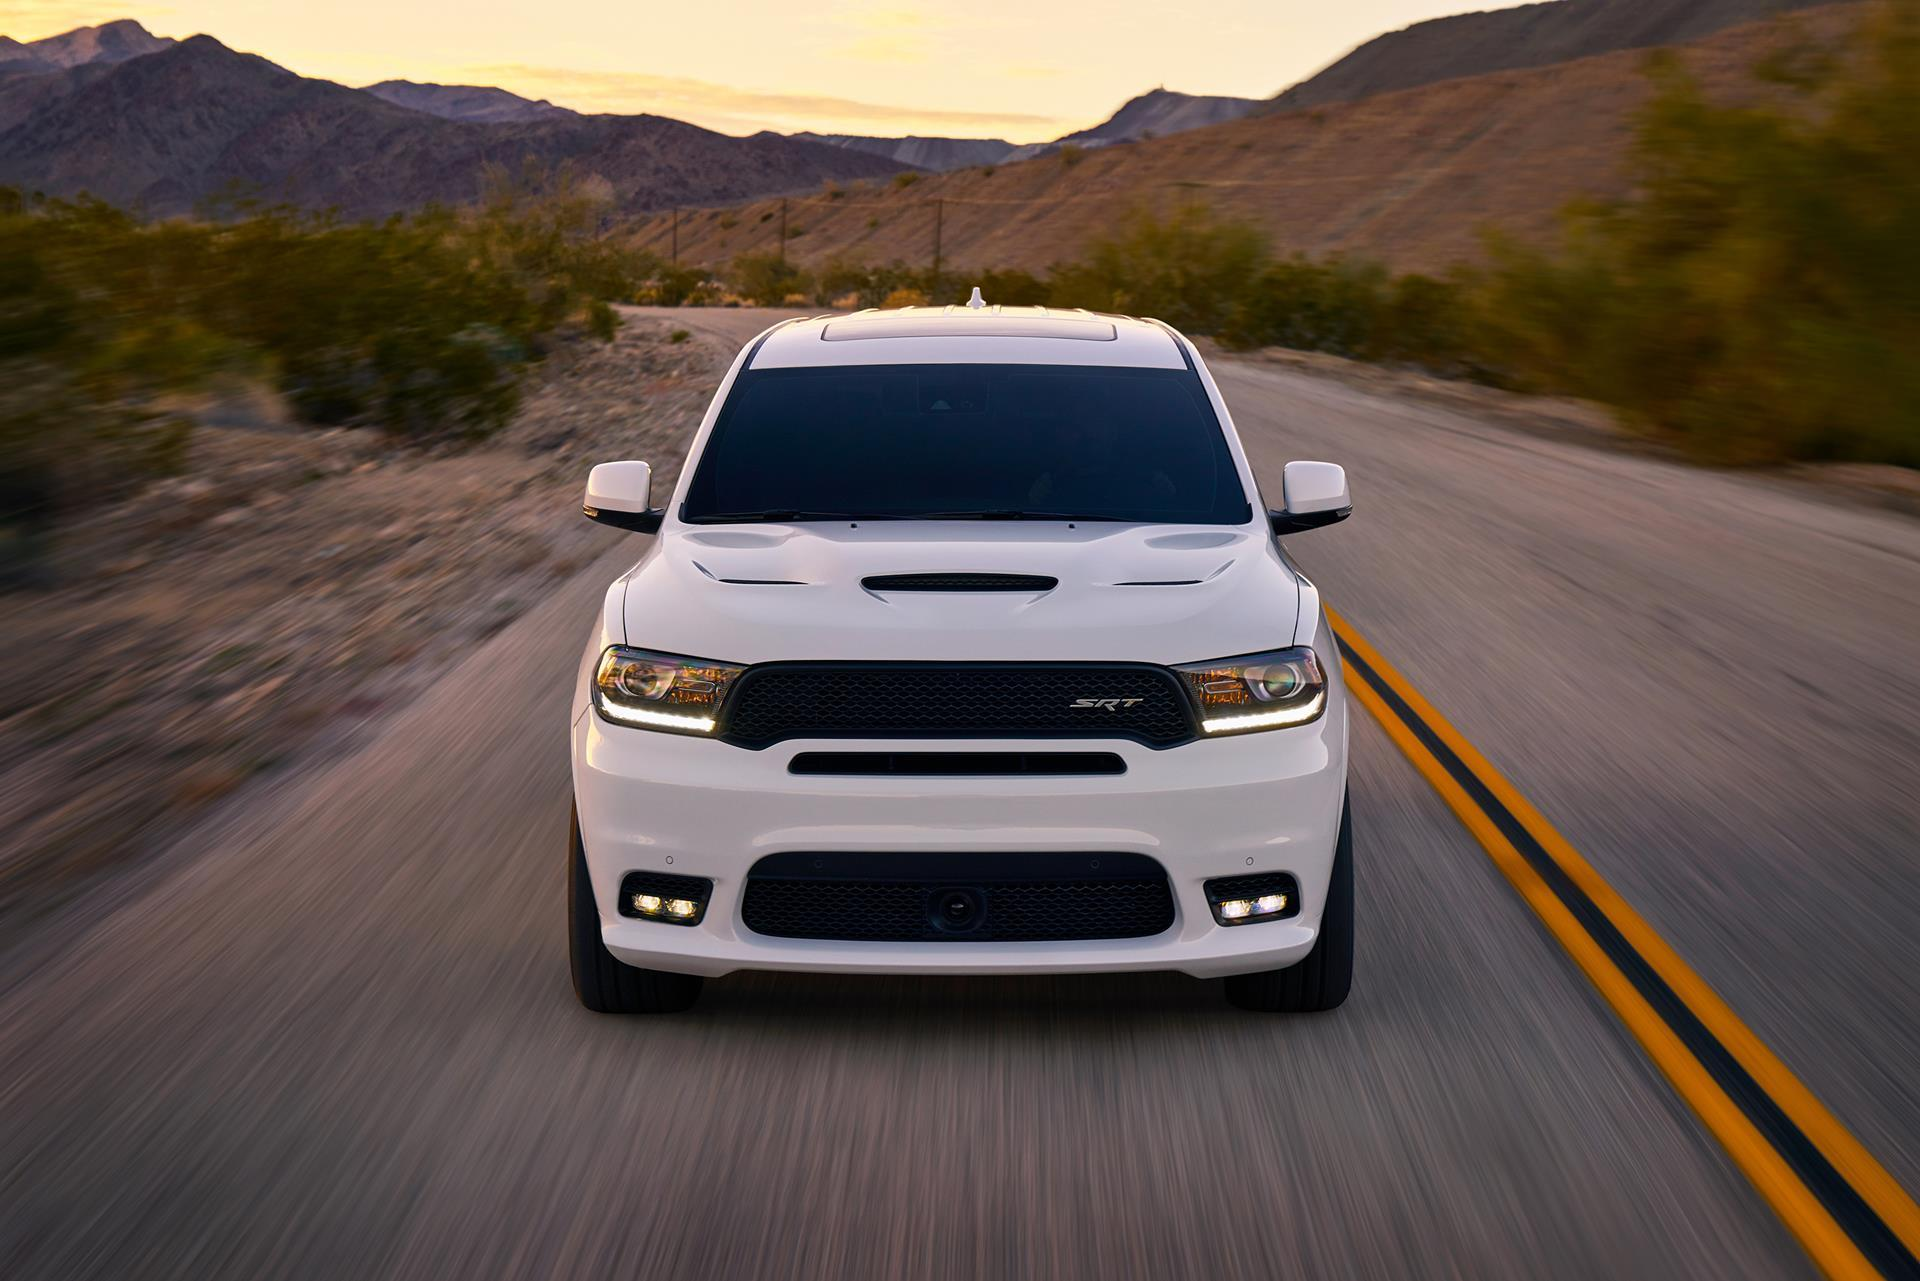 2018 dodge durango srt news and information for Newspaper wallpaper for sale